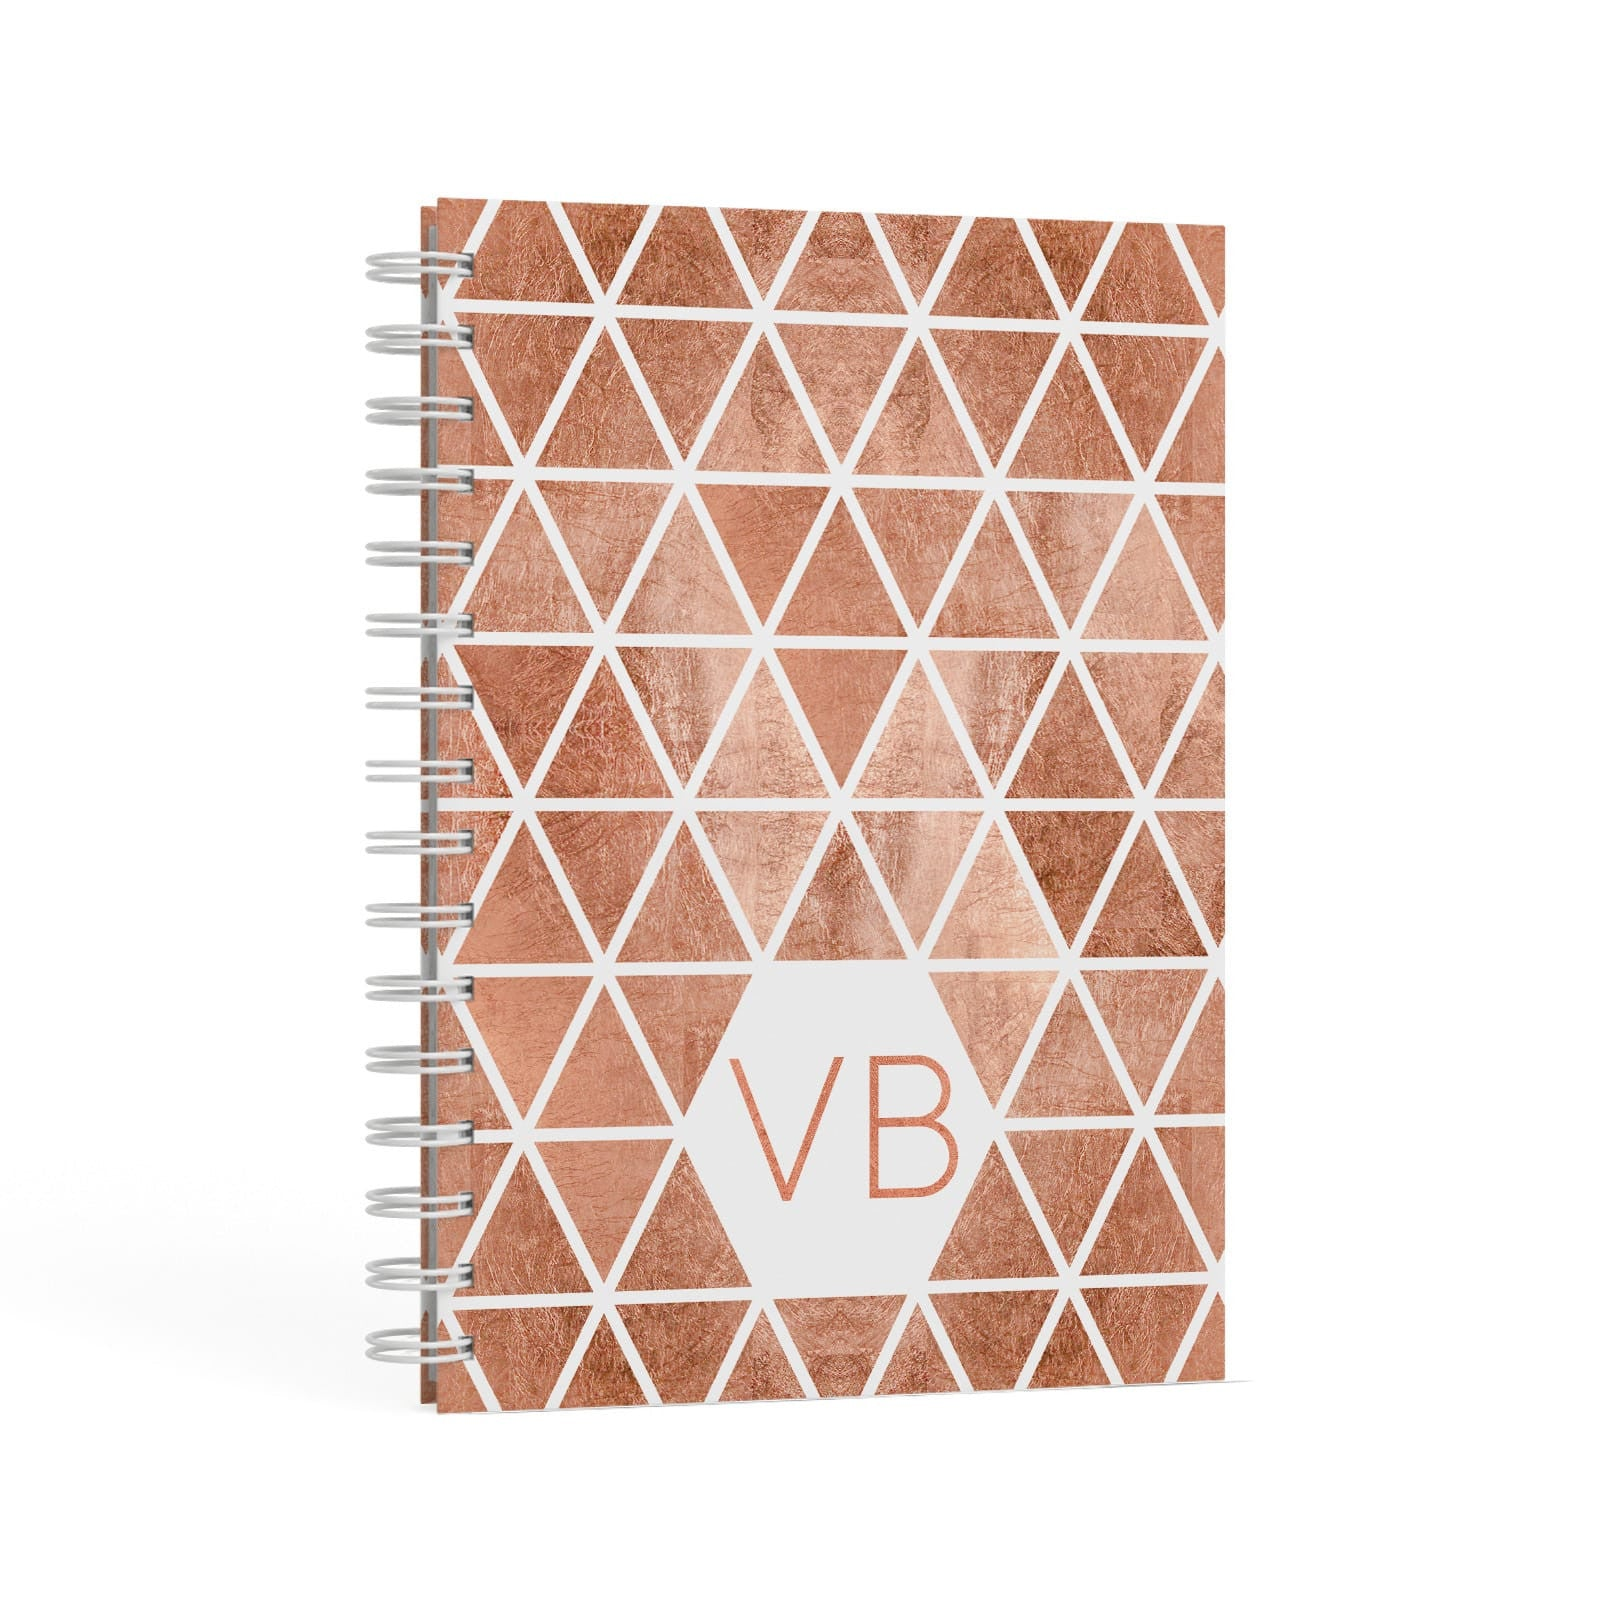 Personalised Copper Initials A5 Hardcover Notebook Second Side View